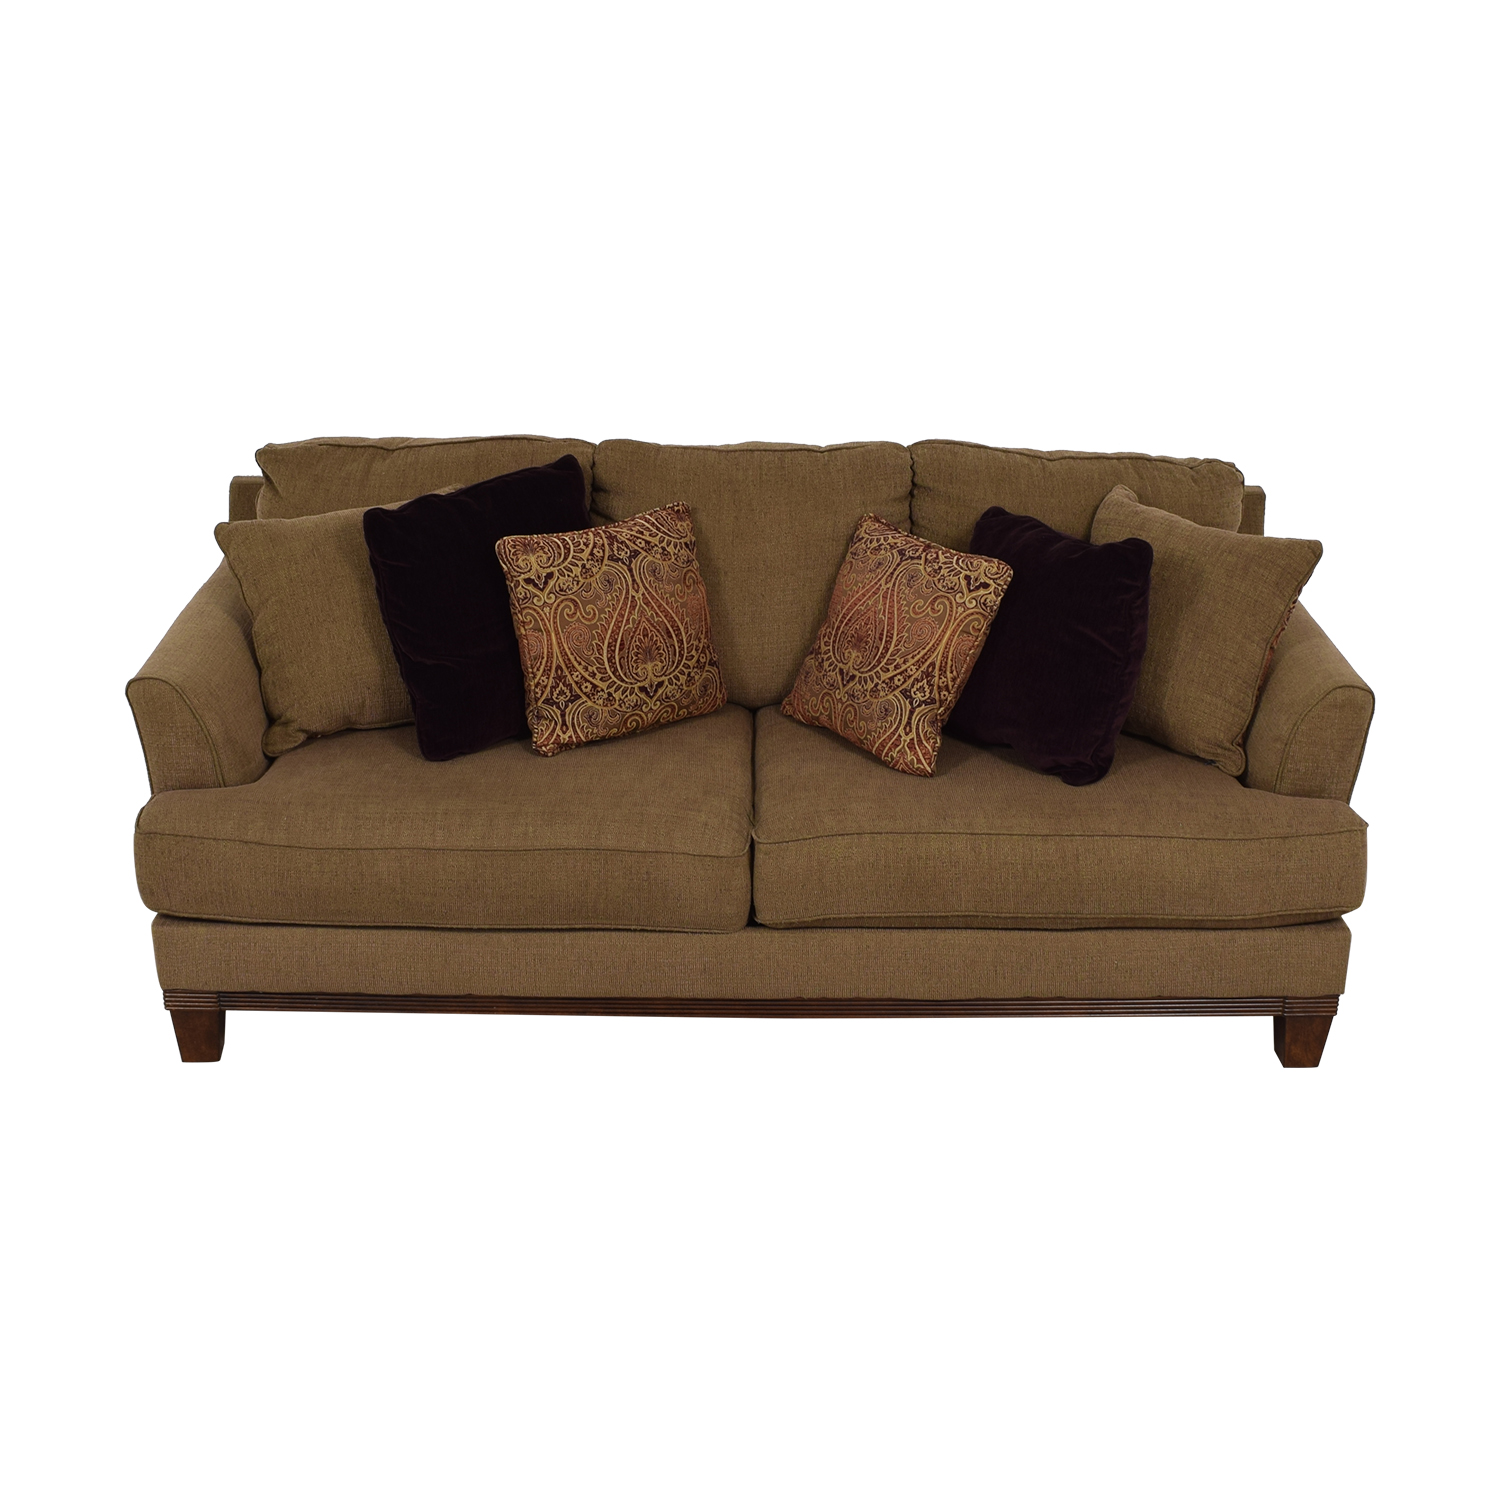 Ashley Furniture Ashley Furniture Brown Two-Cushion Sofa coupon